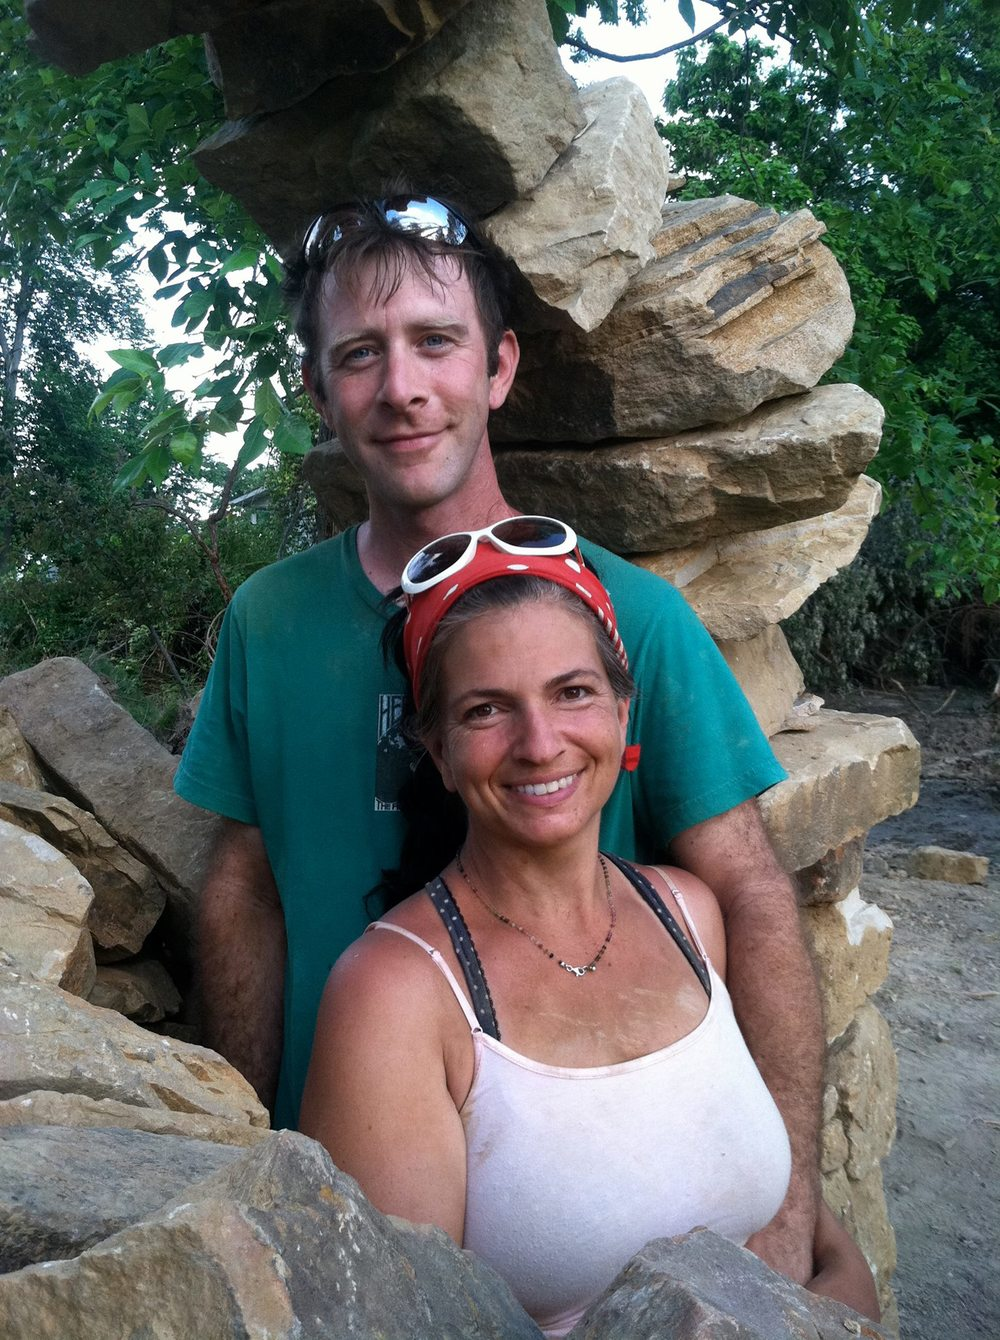 Thea and Mike, after having completed the Infinity Arch. Image credit goes to Diana Tigerlily and Greg Reid. Copyright  Mandala Gardens .